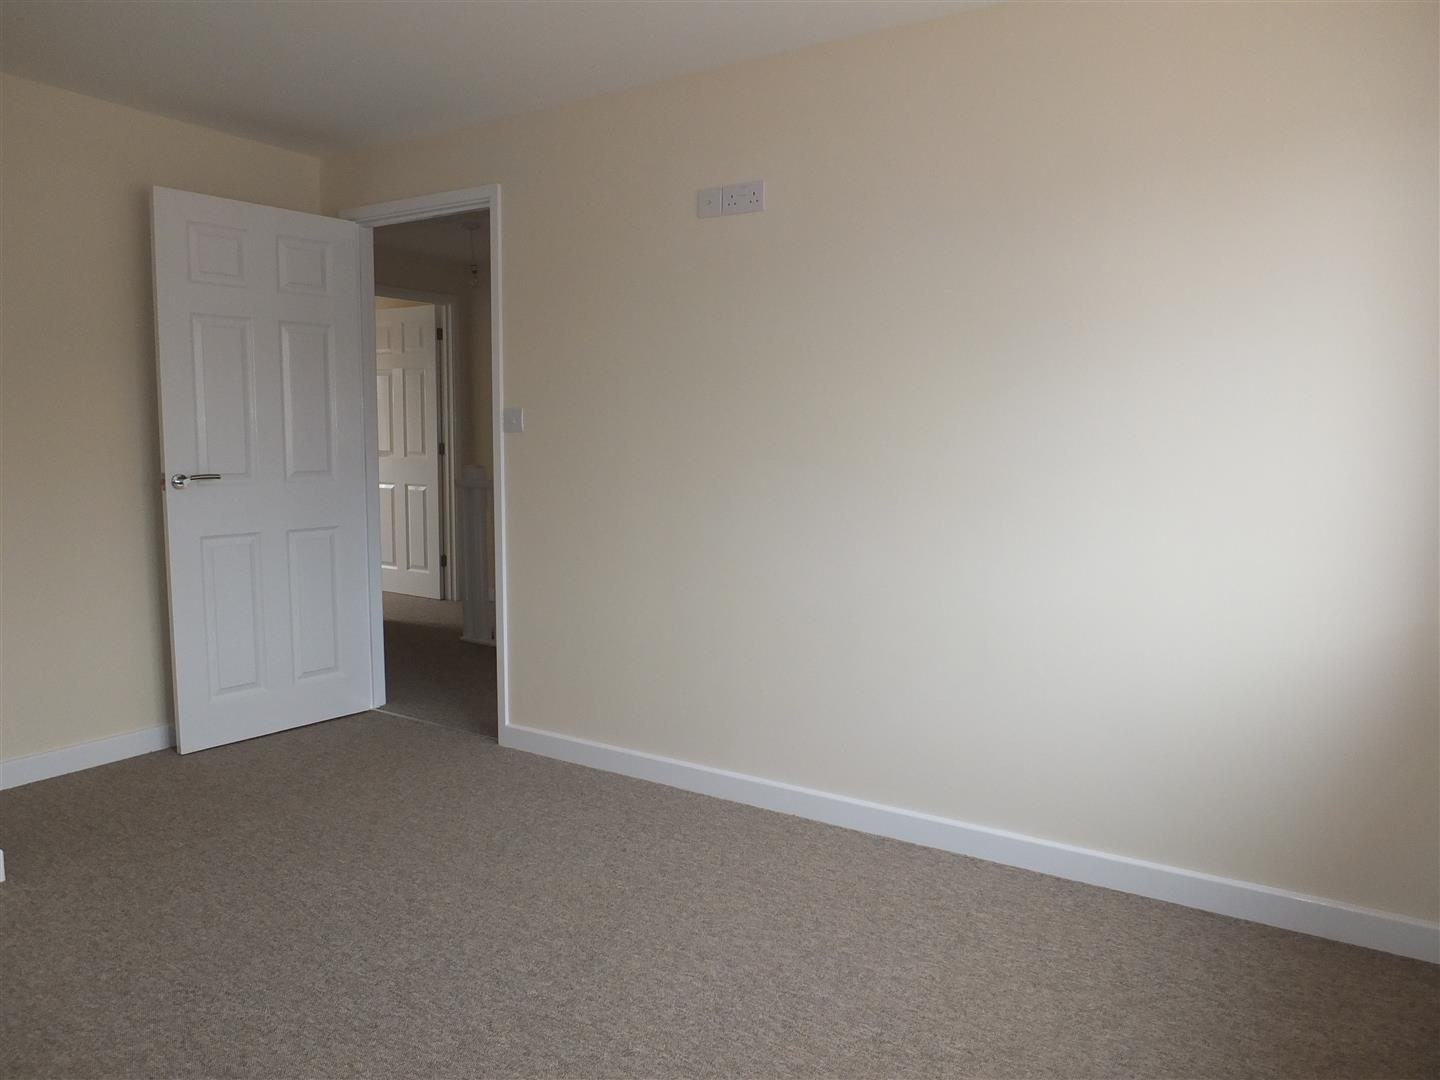 3 bed house to rent in Long Sutton, PE12 9LE  - Property Image 6